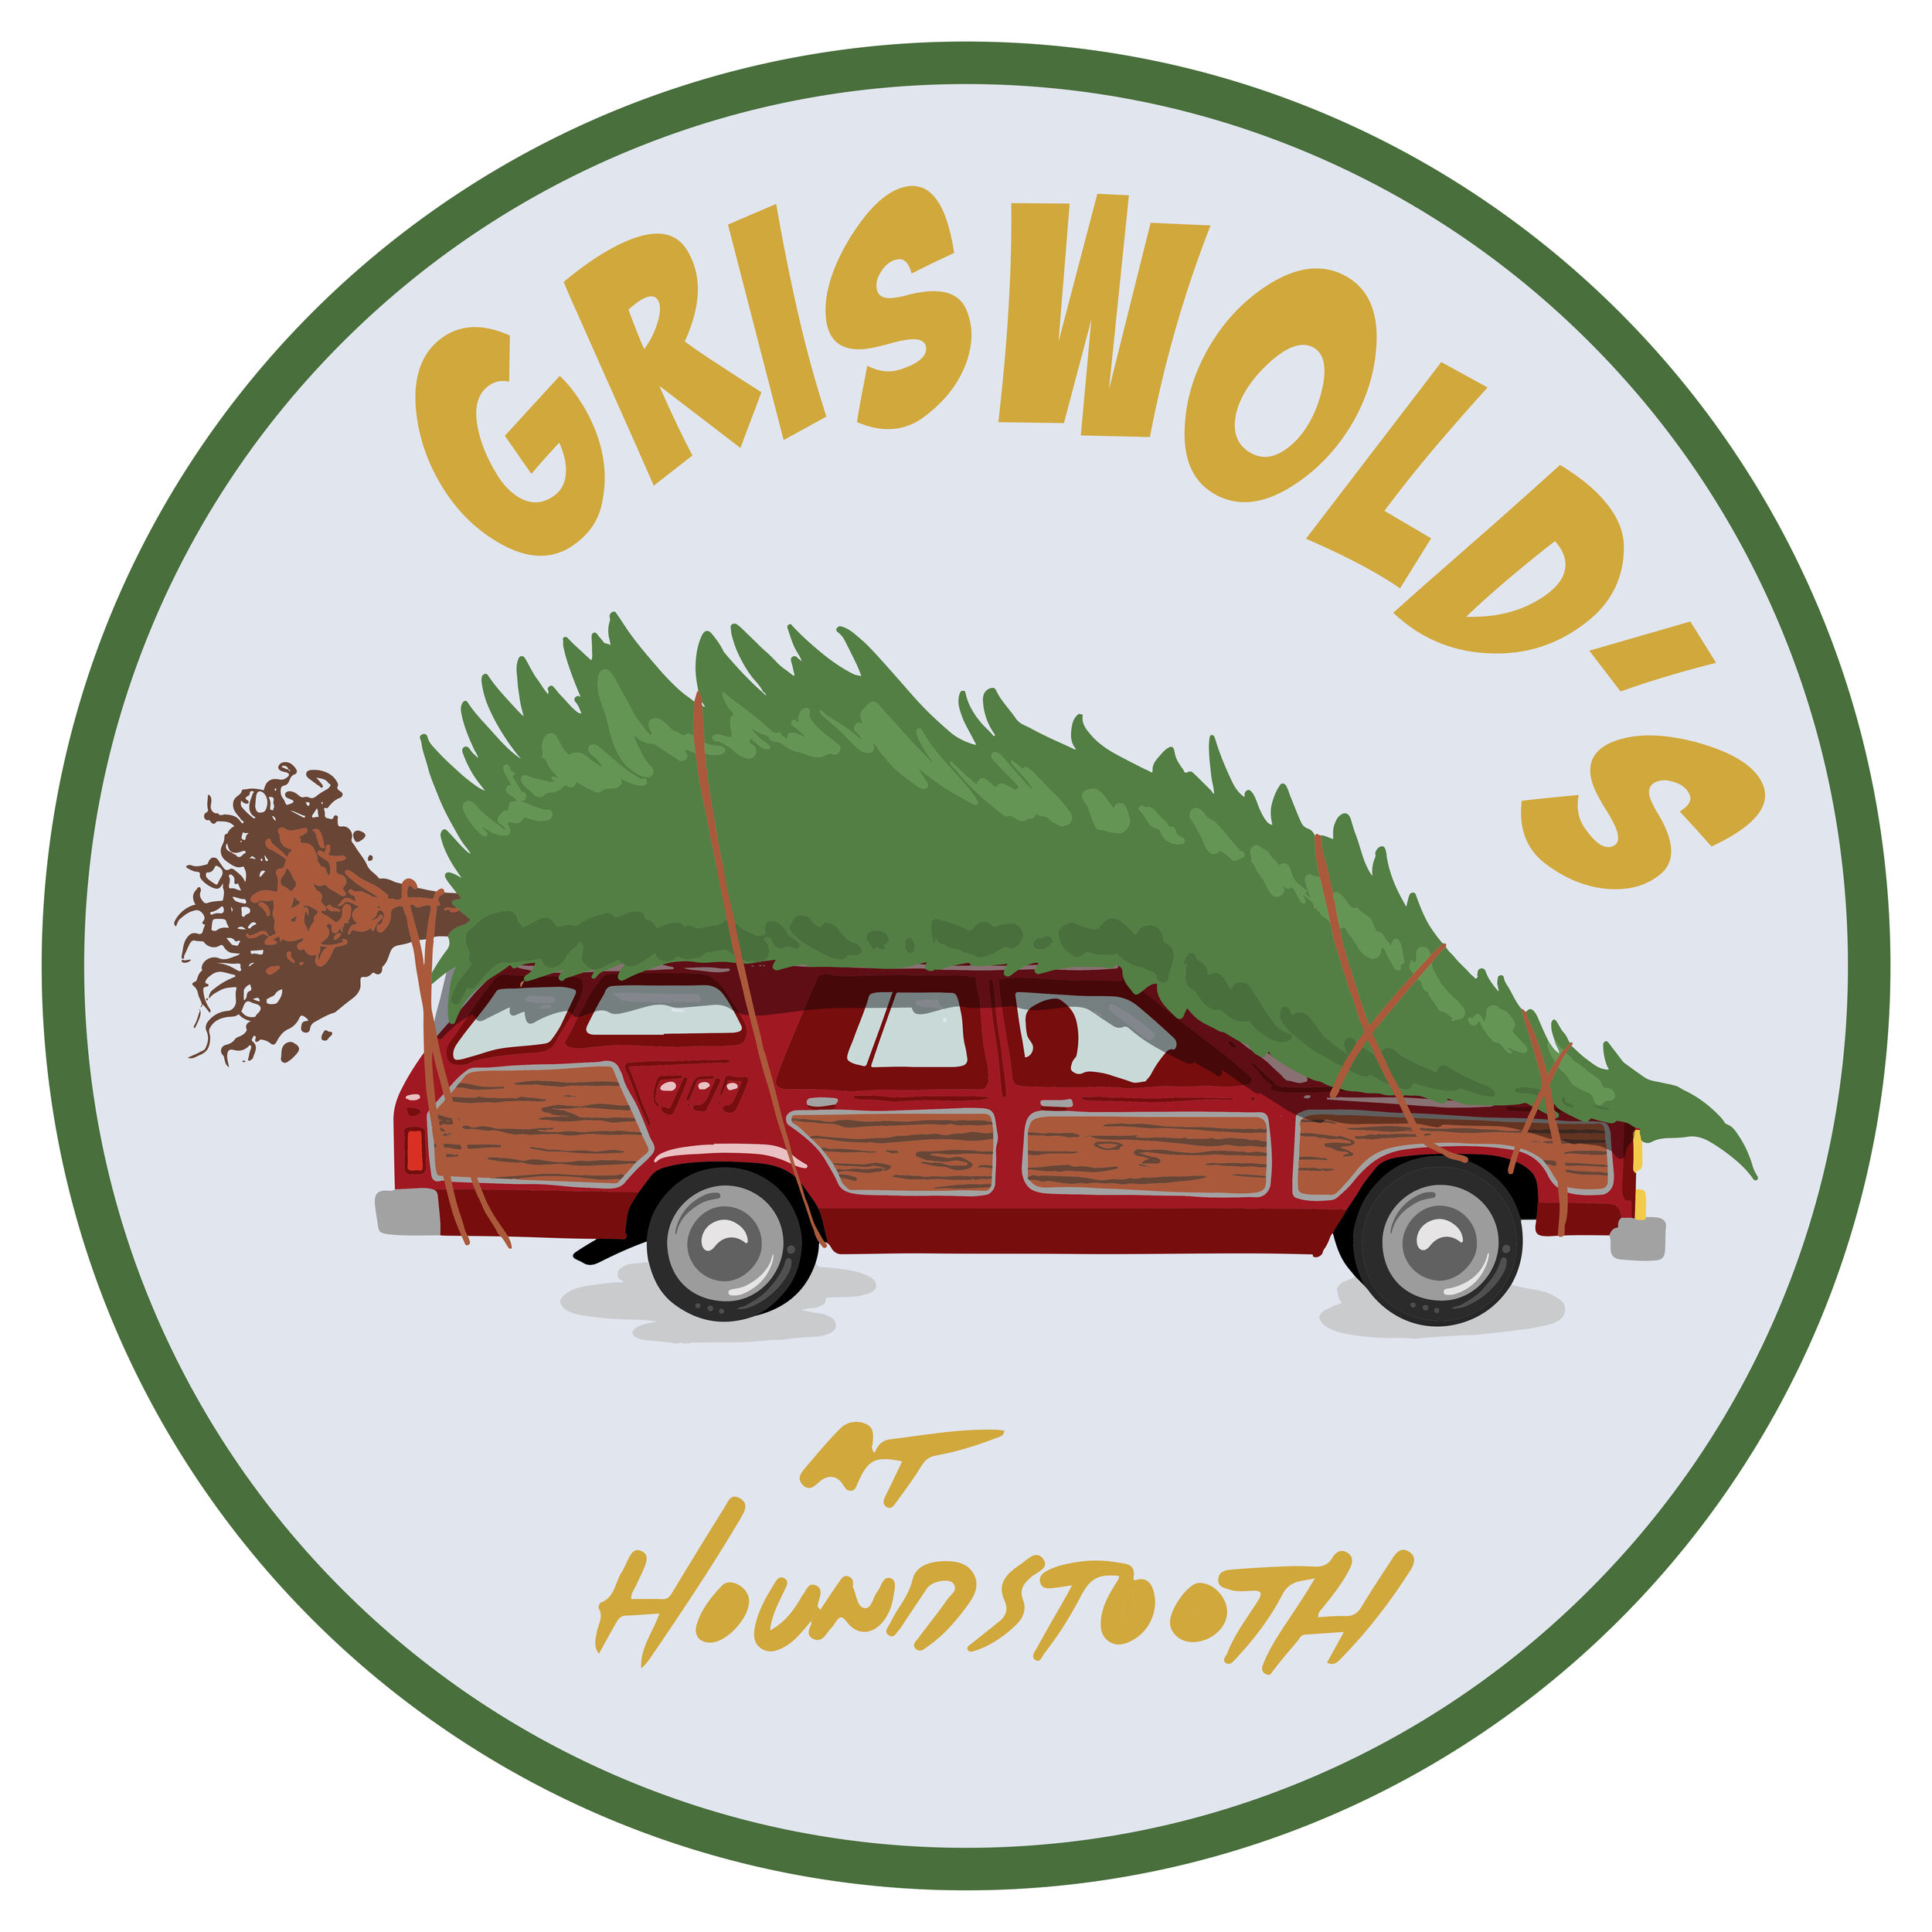 Griswolds_circle (2).jpg